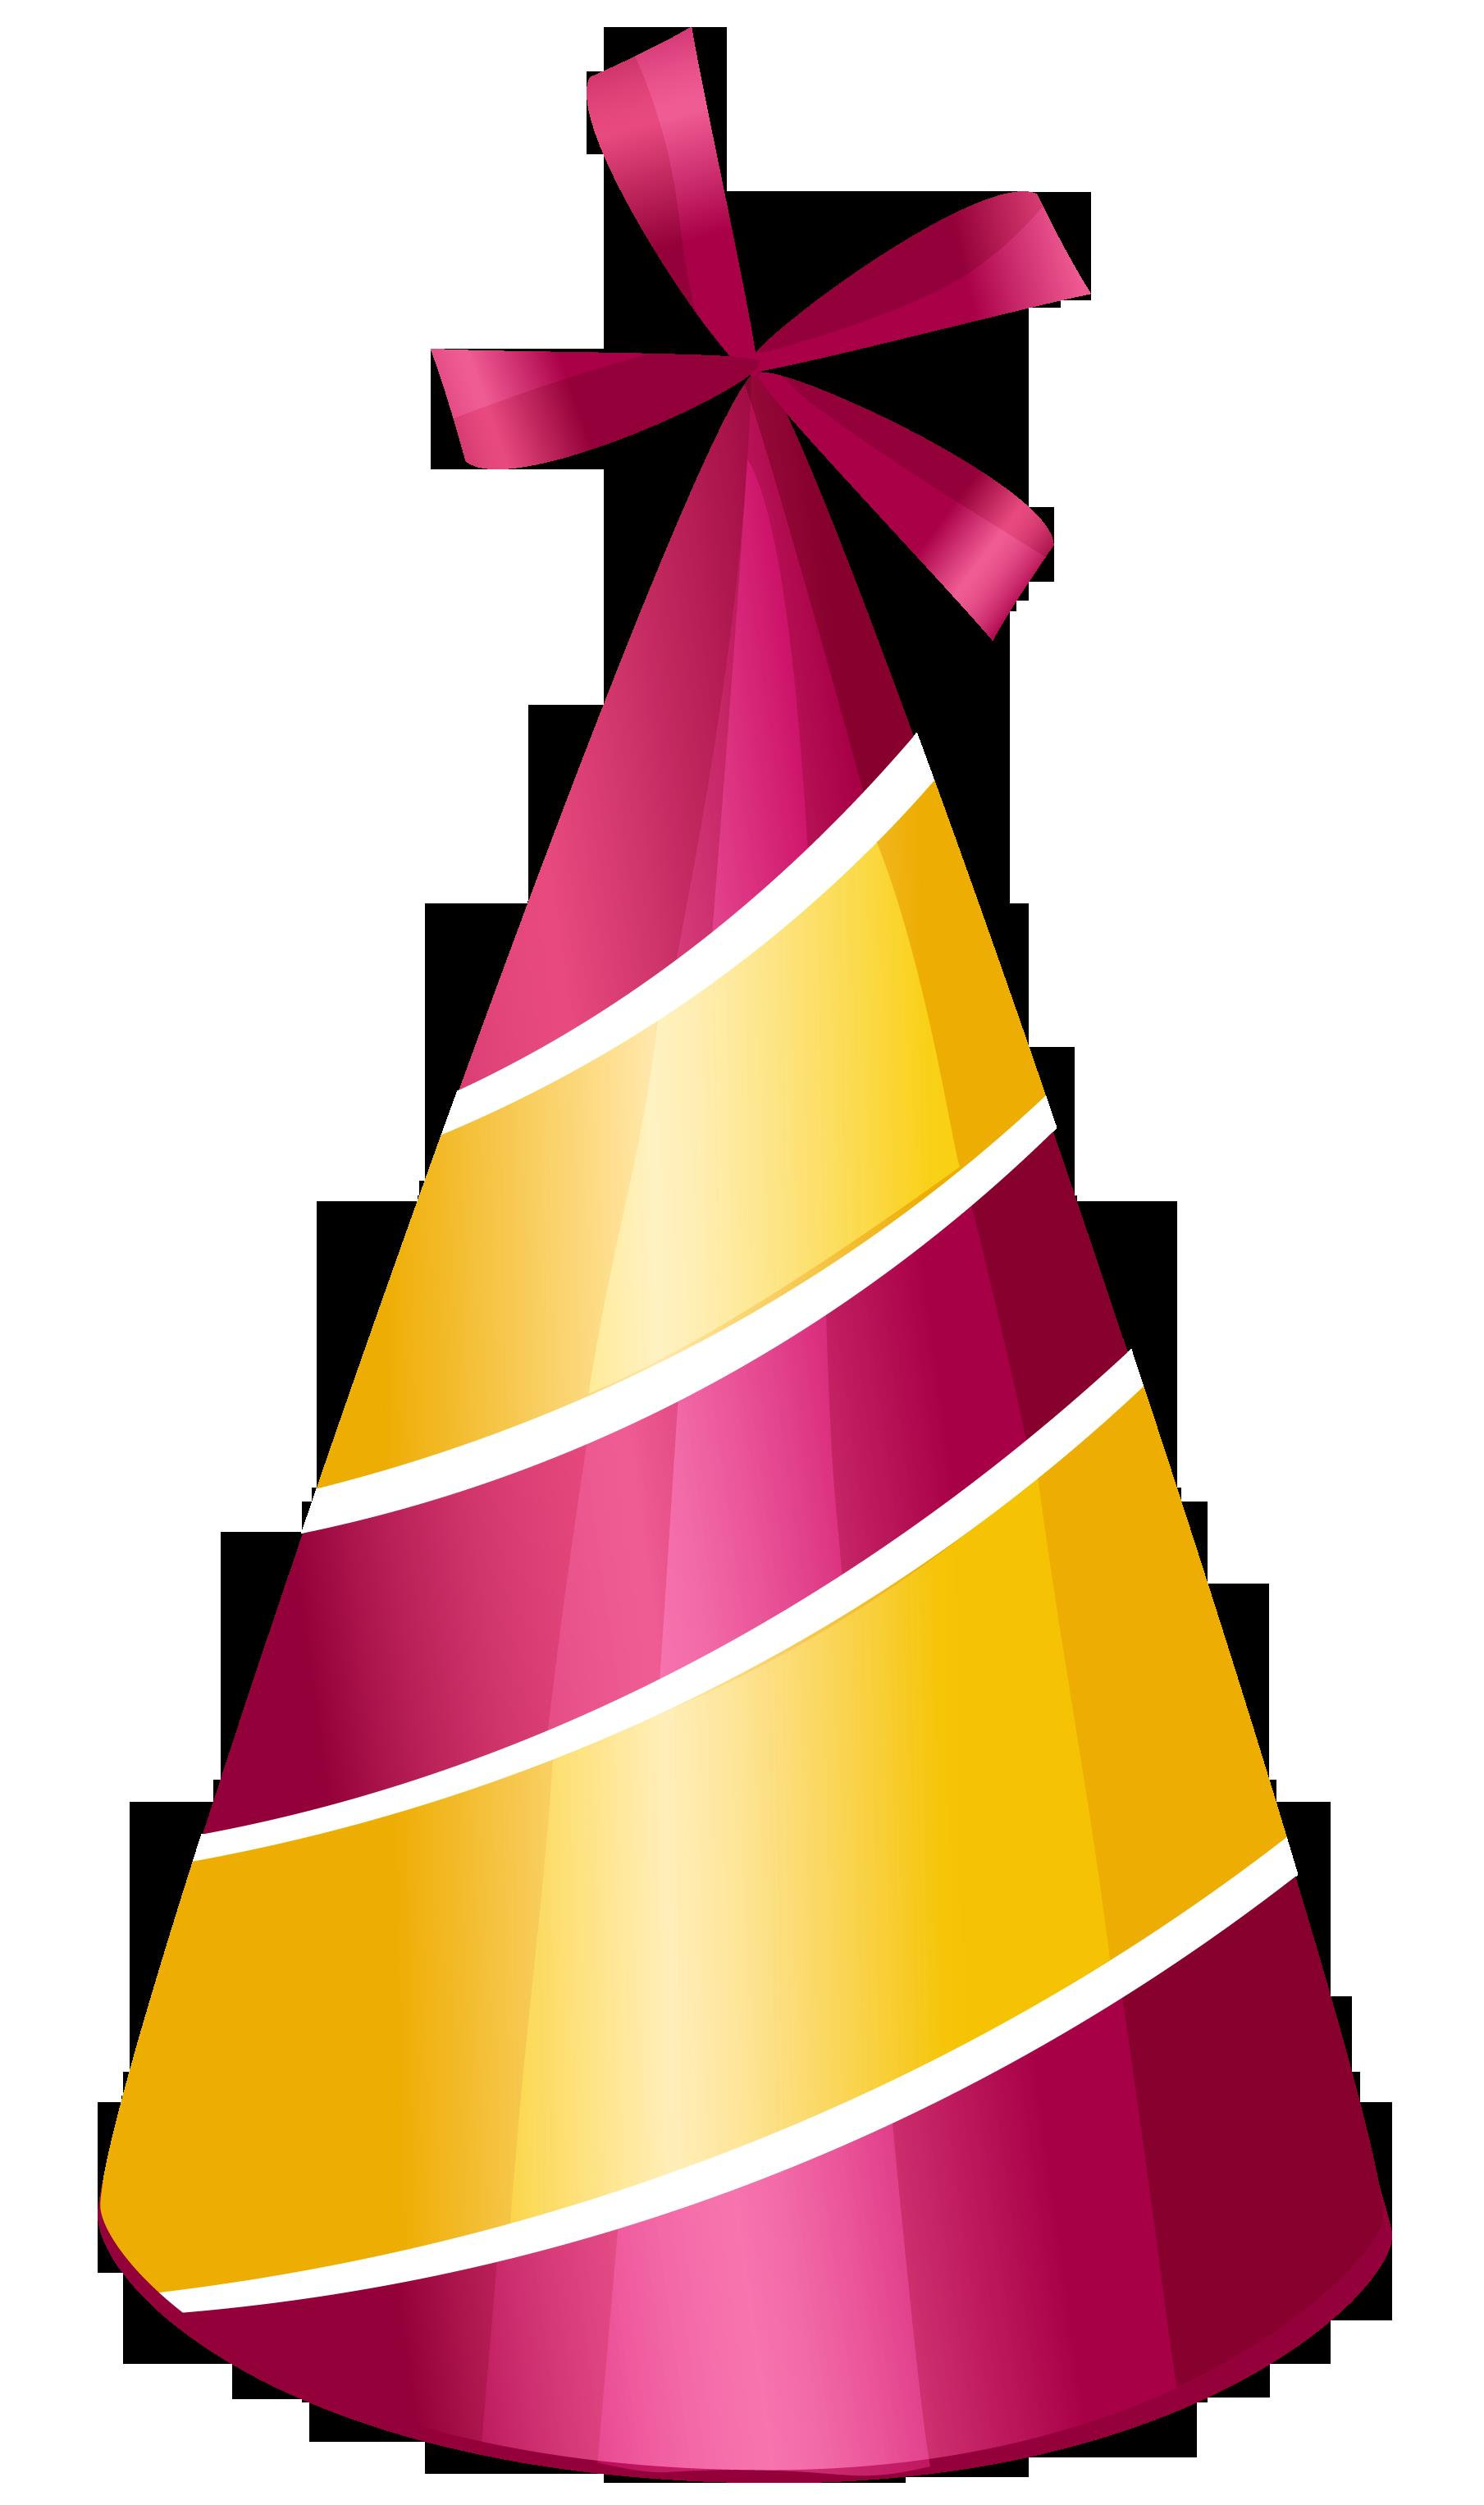 birthday hat clipart ; Birthday-hat-clipart-5